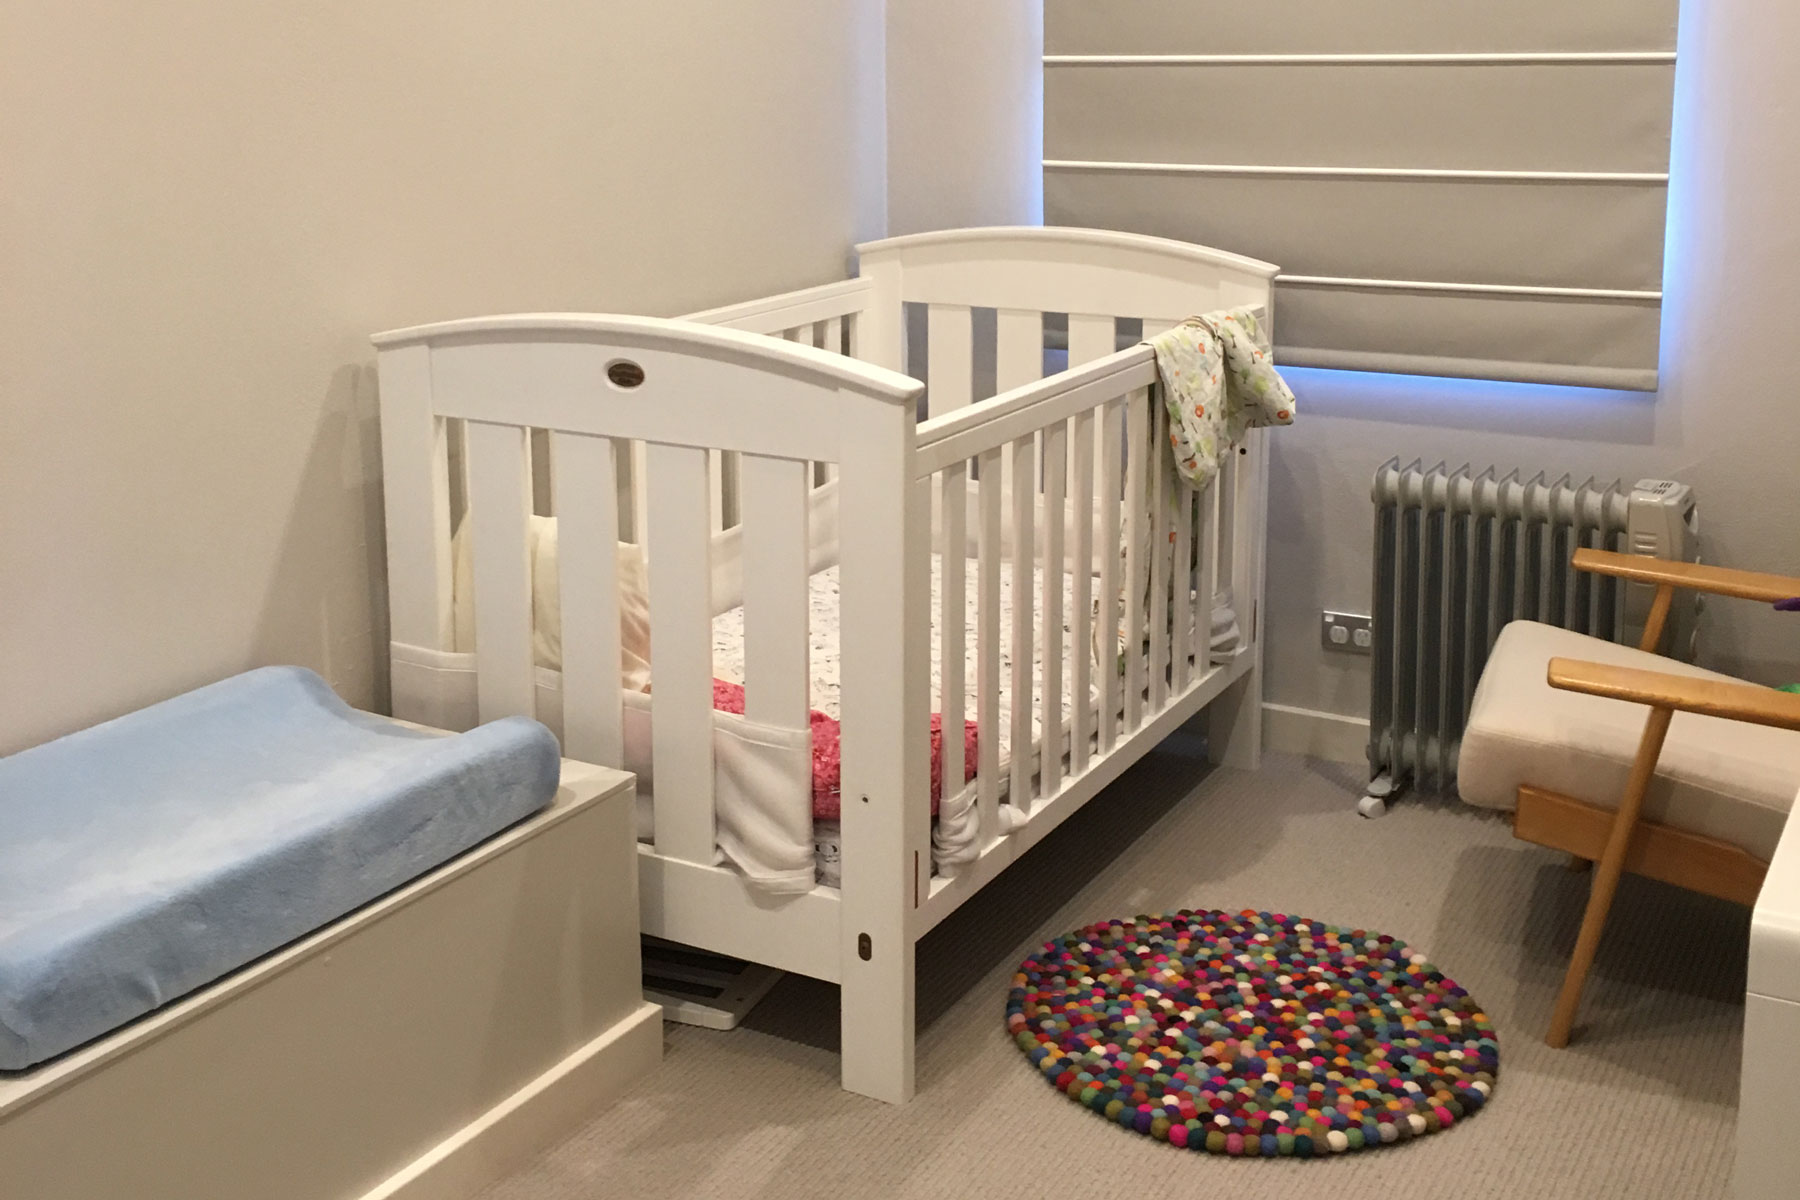 Corinna nursery room - before